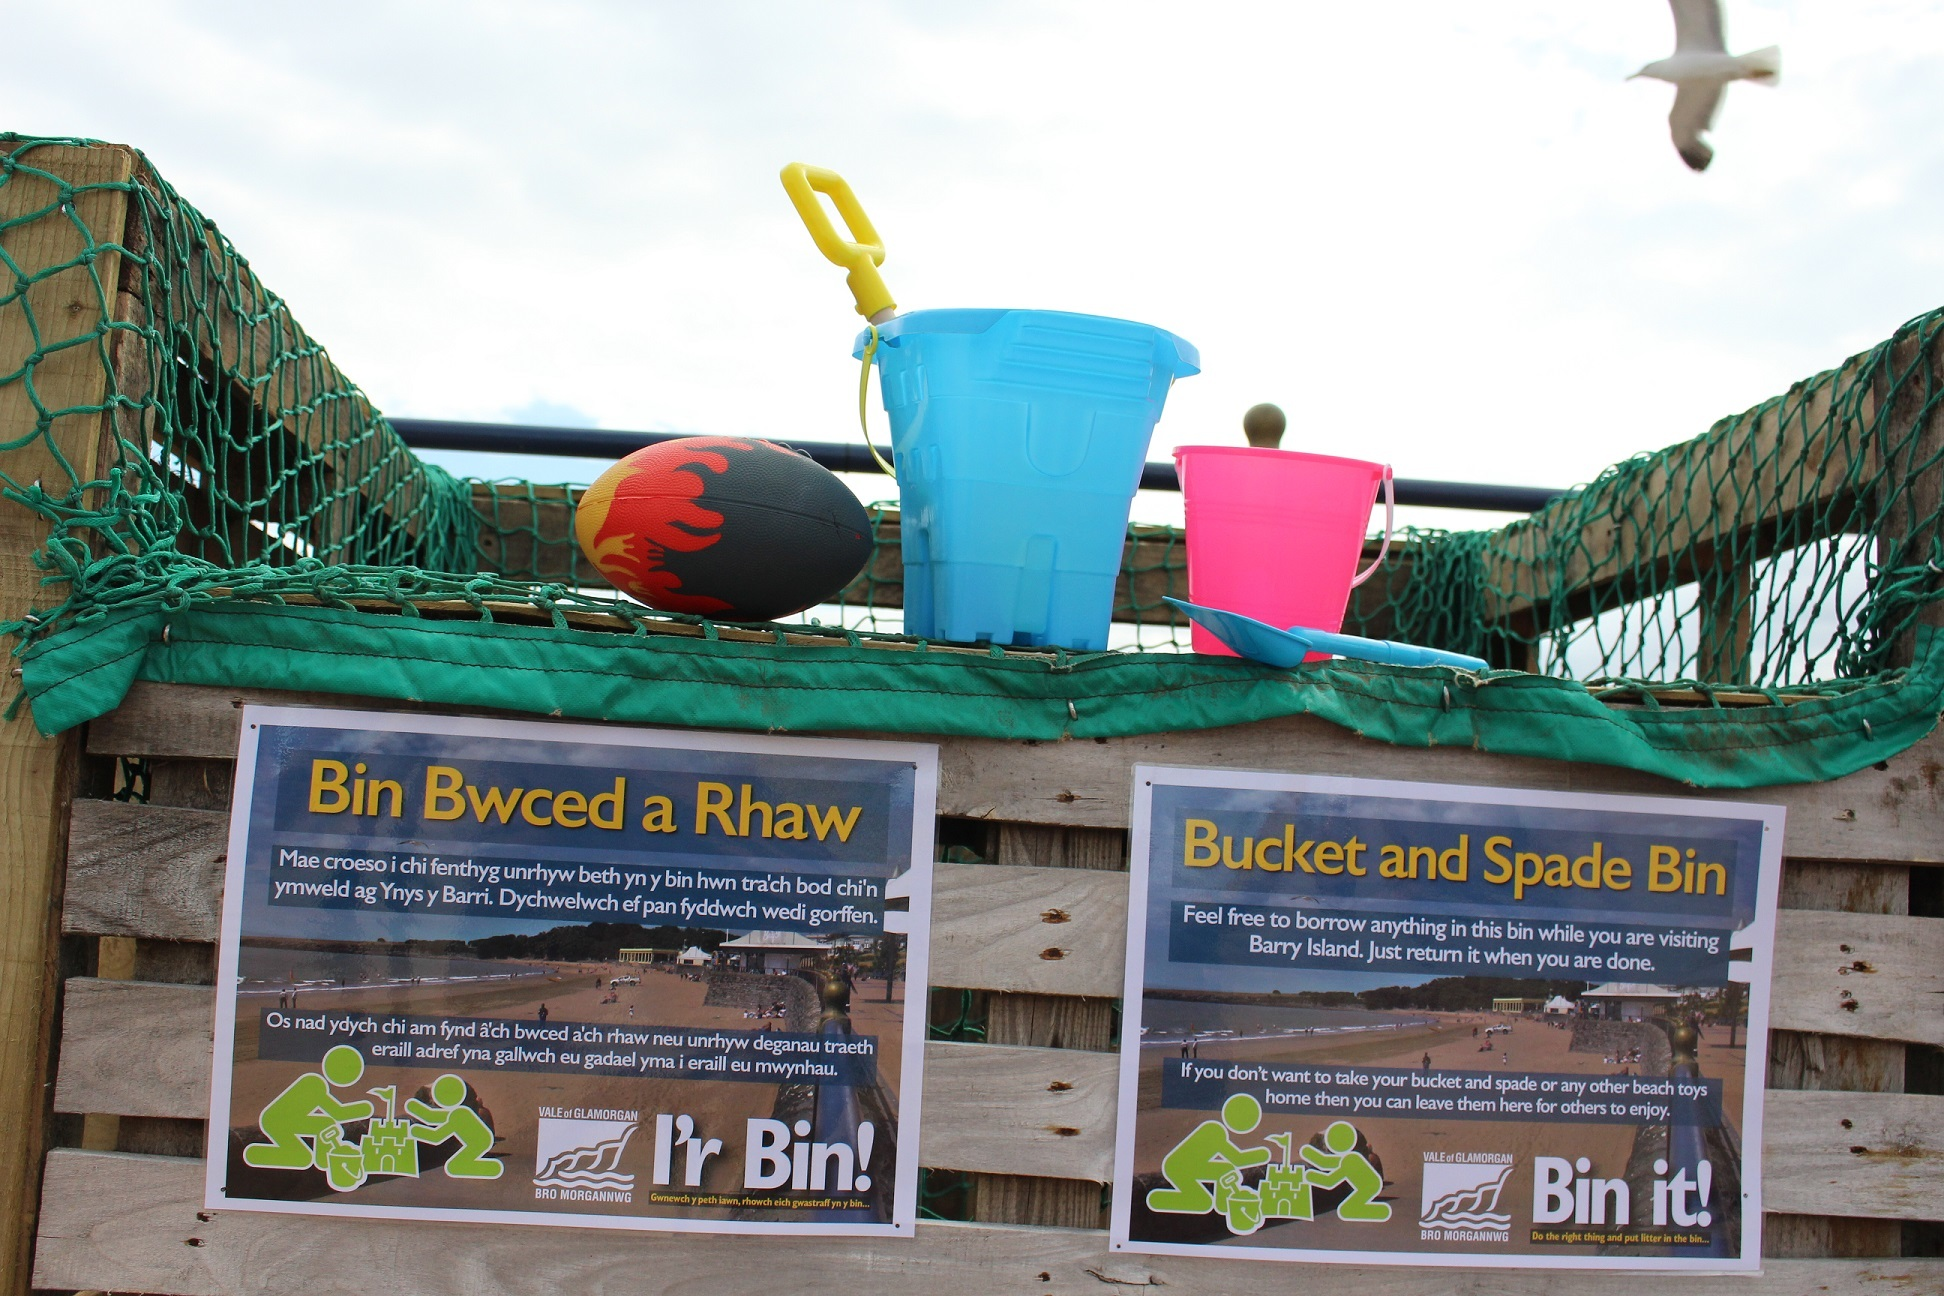 Bucket and spade bin launched in Barry Island